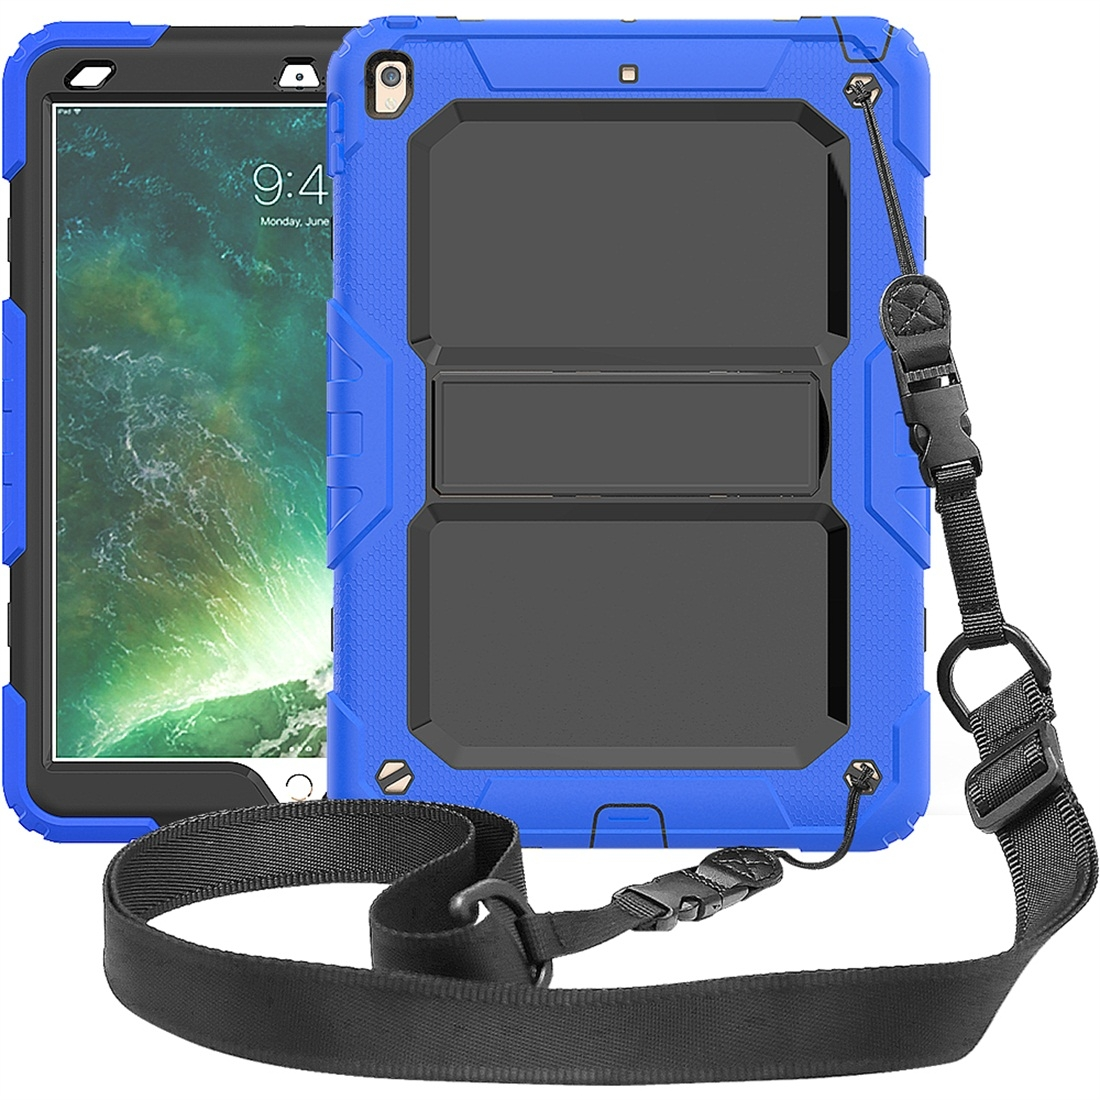 Shockproof Protective And Durable iPad Air Case (10.5 Inch), with Shoulder Strap (Blue)